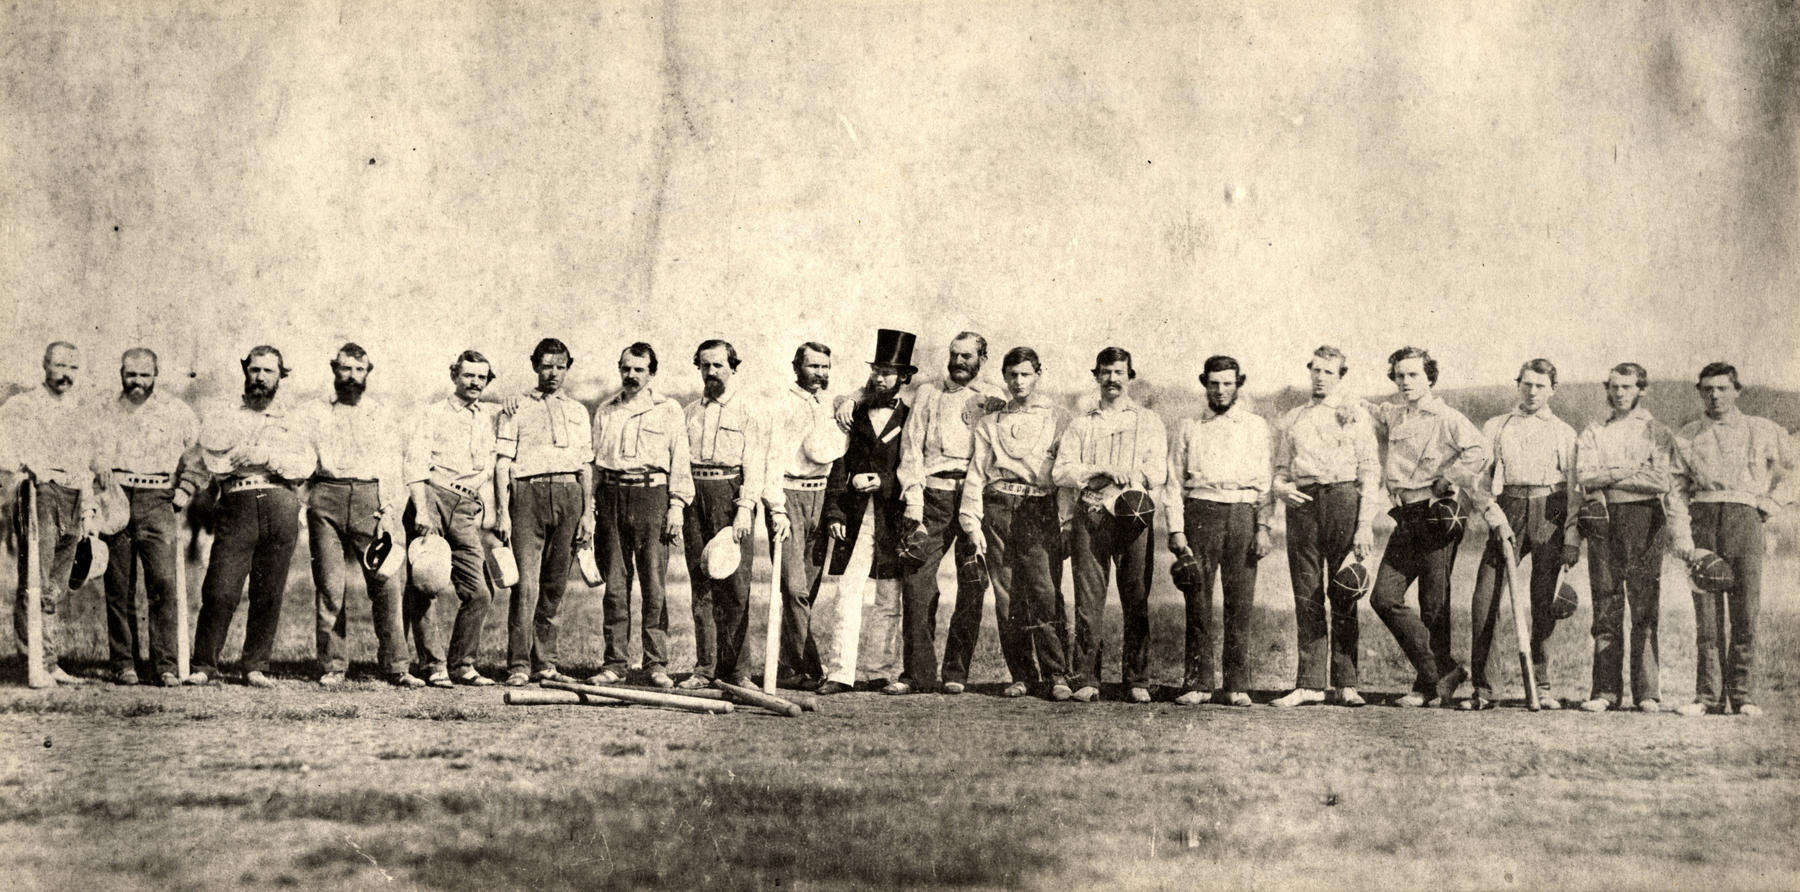 Adams played for the NY Knickerbockers from 1845-1862. The Knickerbockers are seen here in 1859 with the Brooklynn Excelsiors. BL-73.37 (National Baseball Hall of Fame Library)